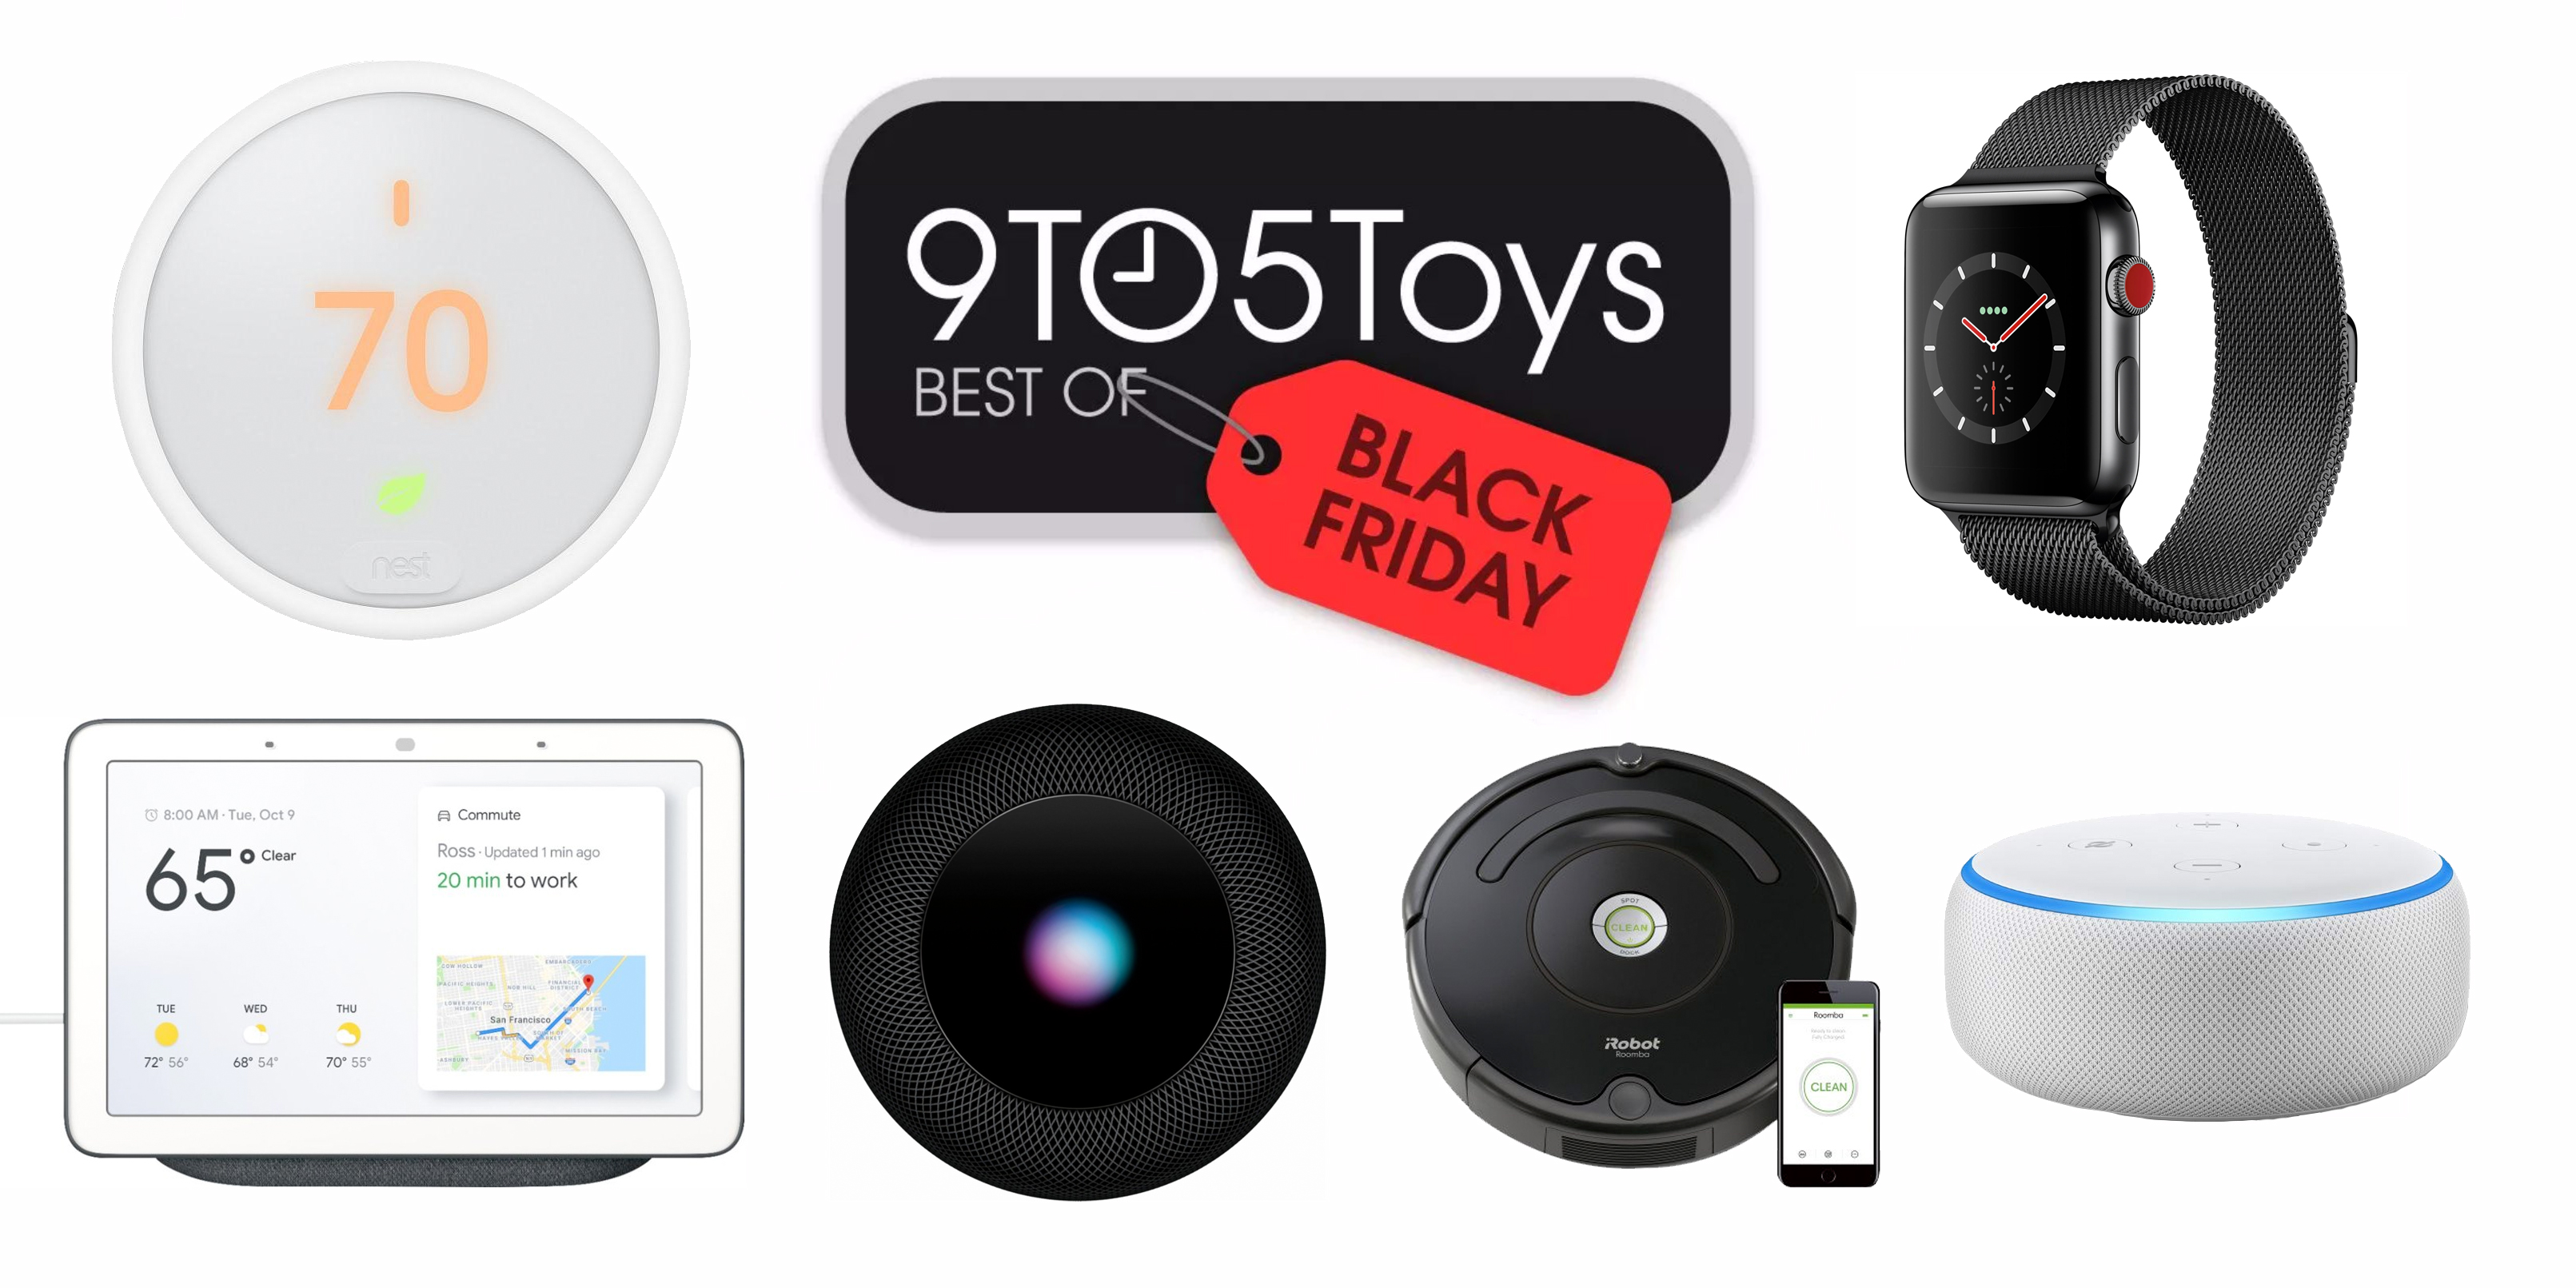 Best of Black Friday 2018 – Top 10 deals for Thanksgiving week (that we know of)